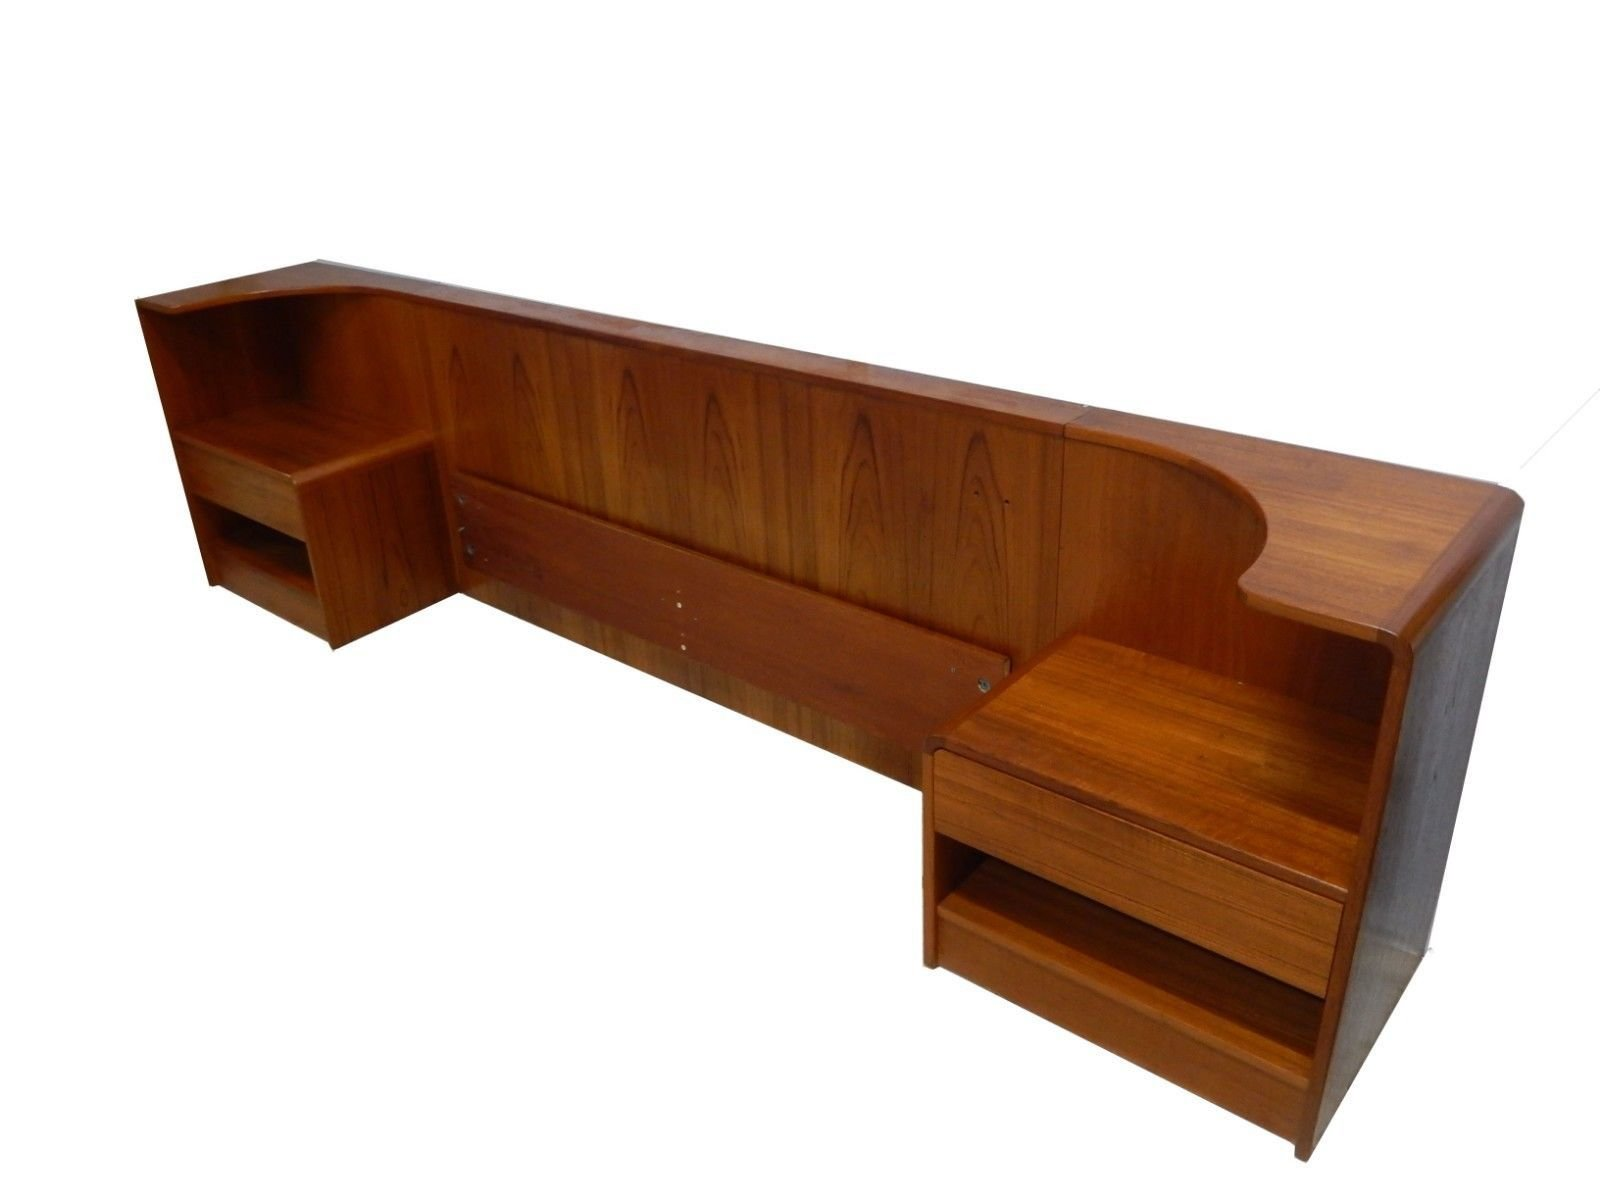 Picture of: Photo 9 Of 10 In 10 Midcentury Modern Headboards To Elevate Your Bedroom Dwell